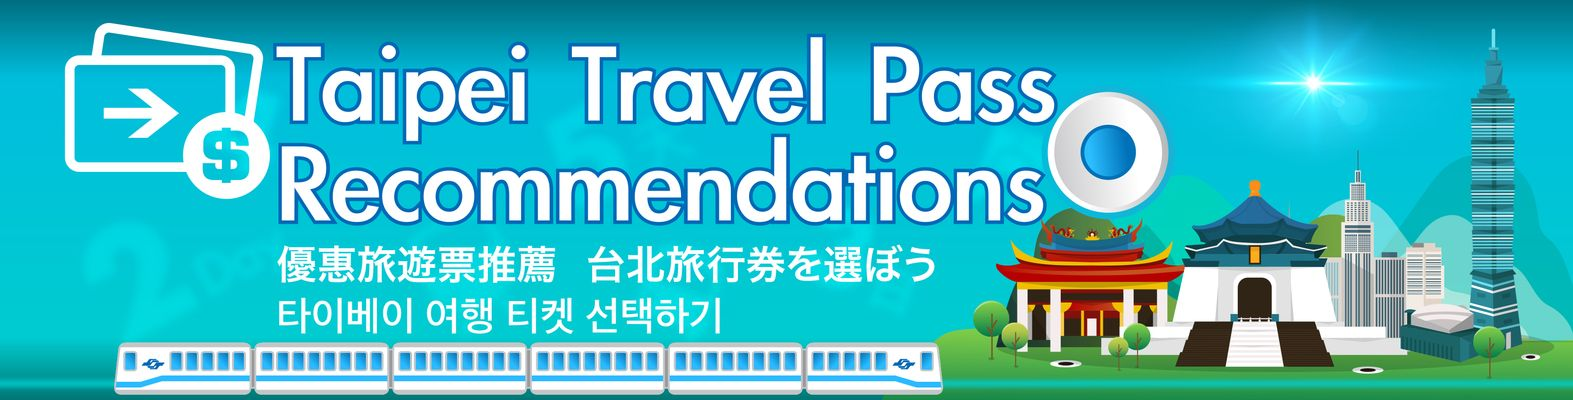 Travel Pass Recommendations